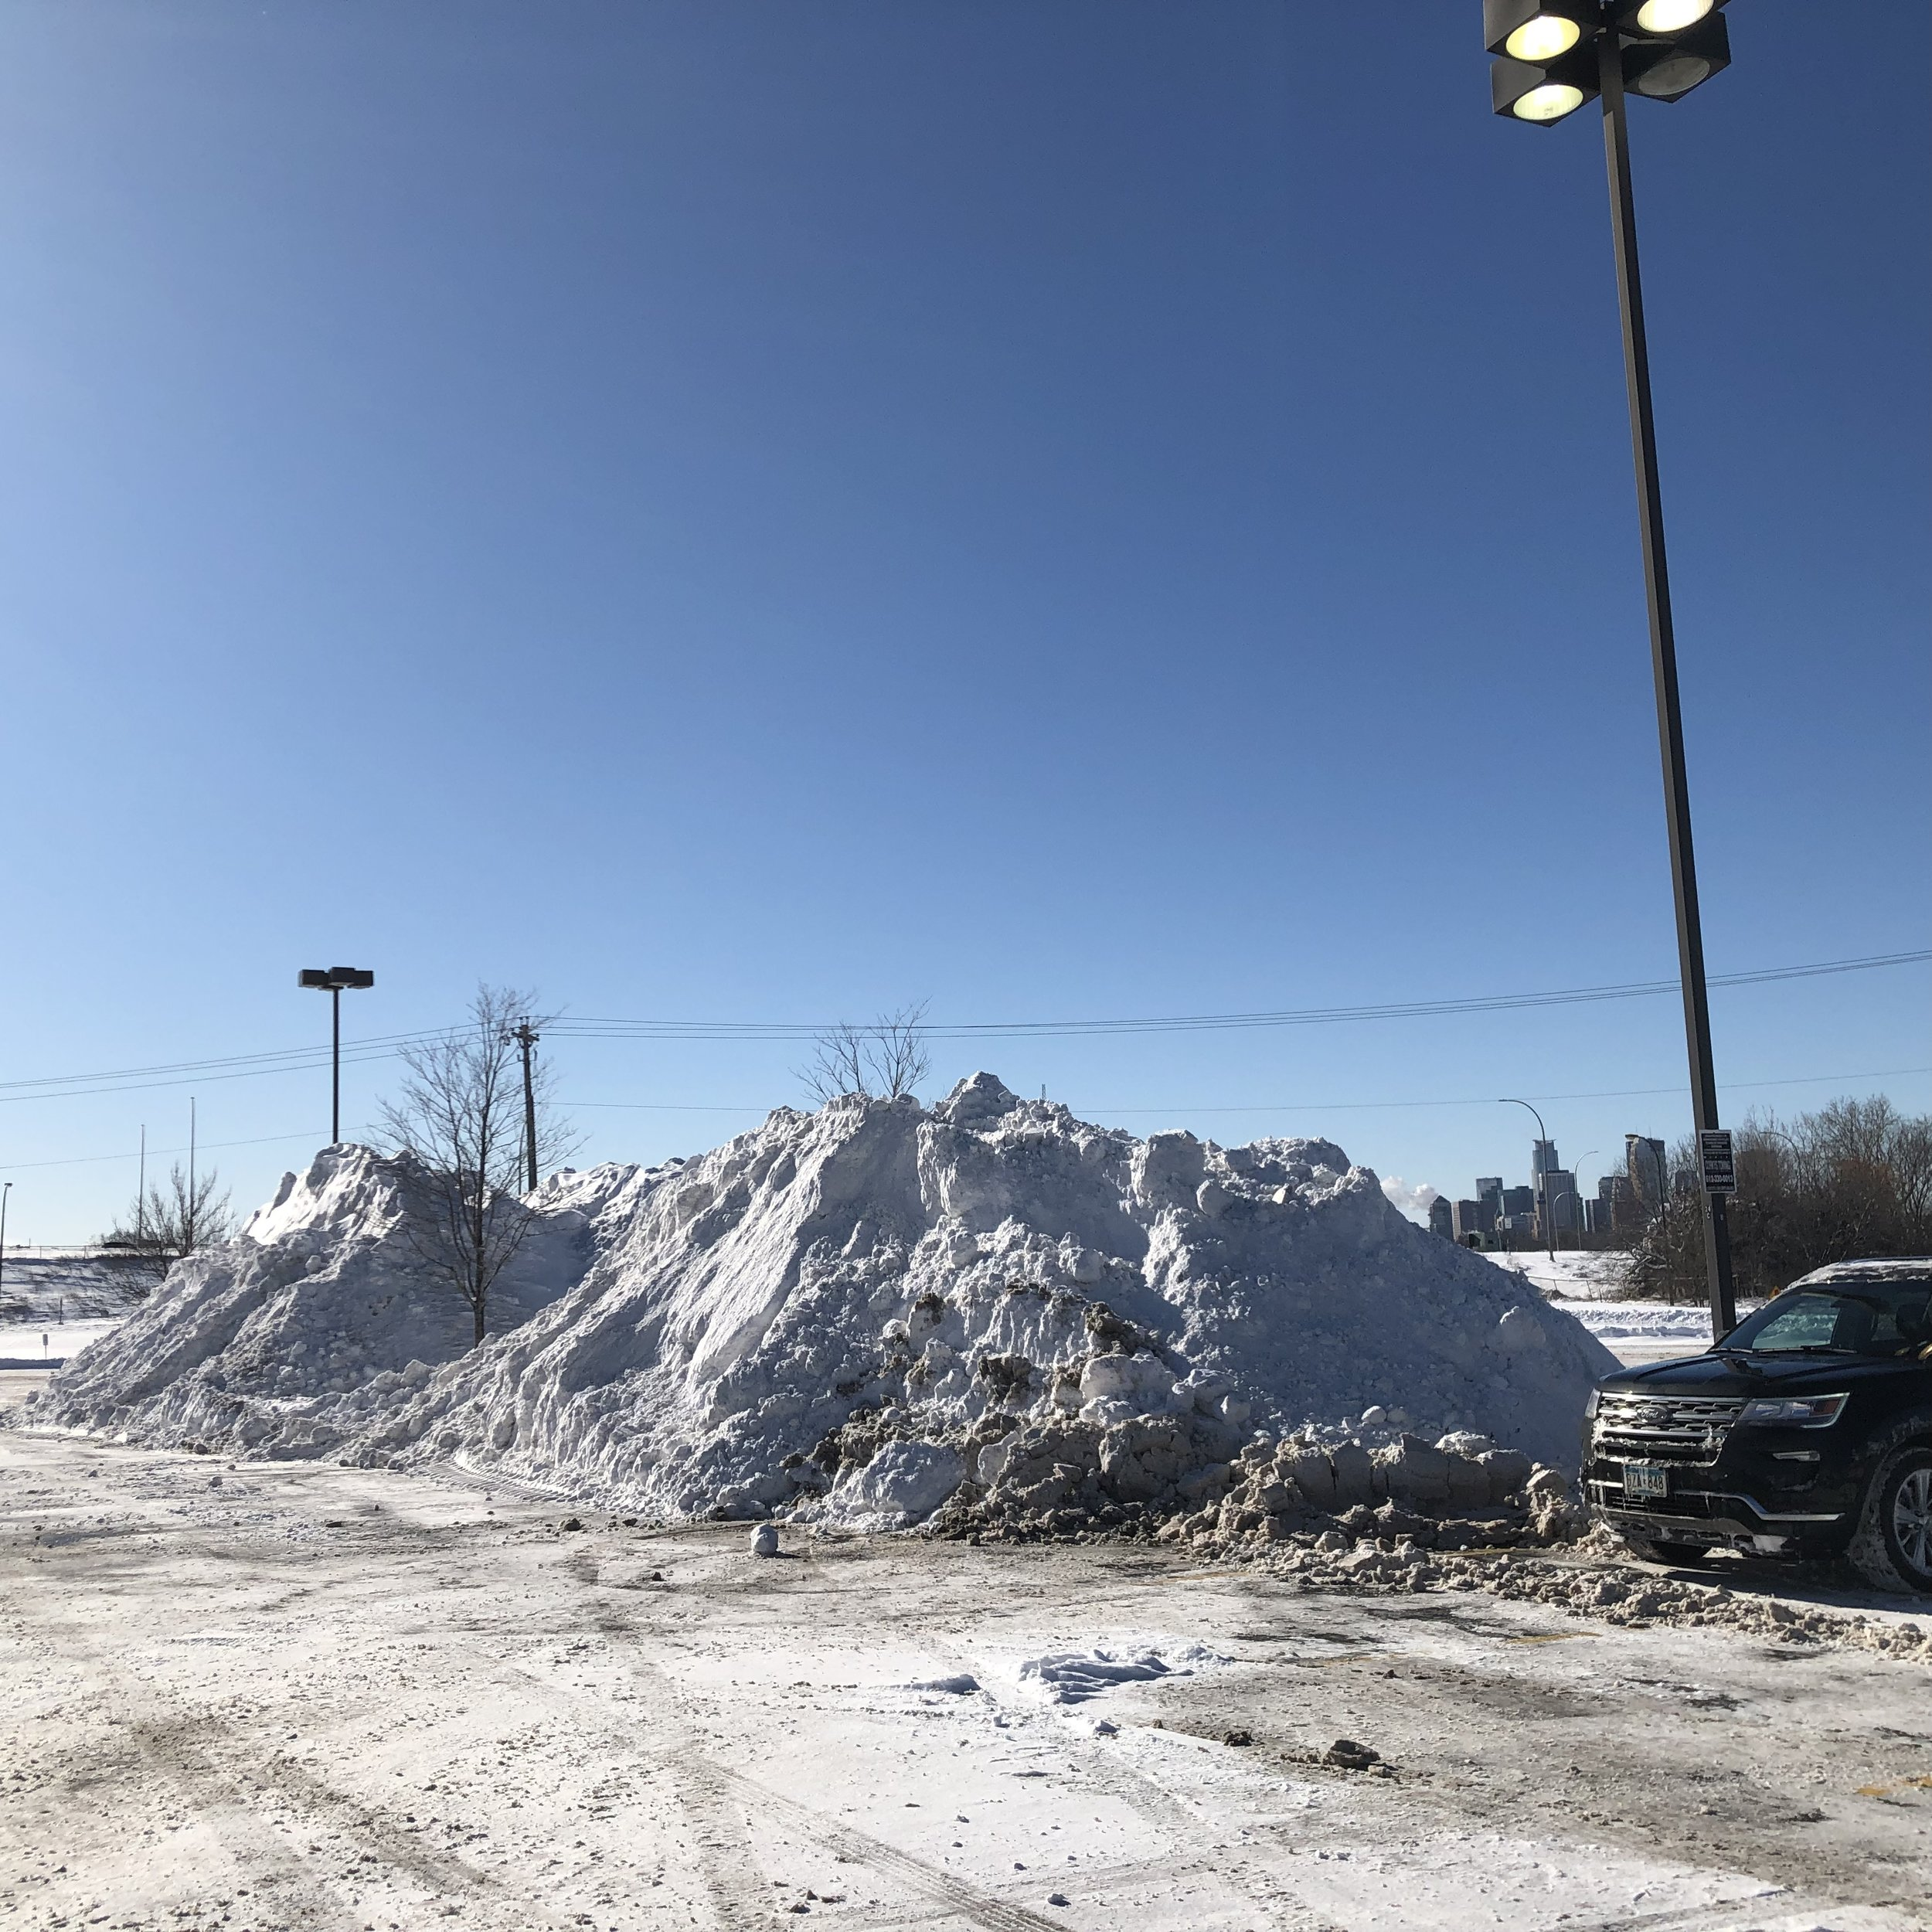 Minnesota is so flat, we have to build our own mountains out of the massive amounts of snow that fall from our cold, gray skies